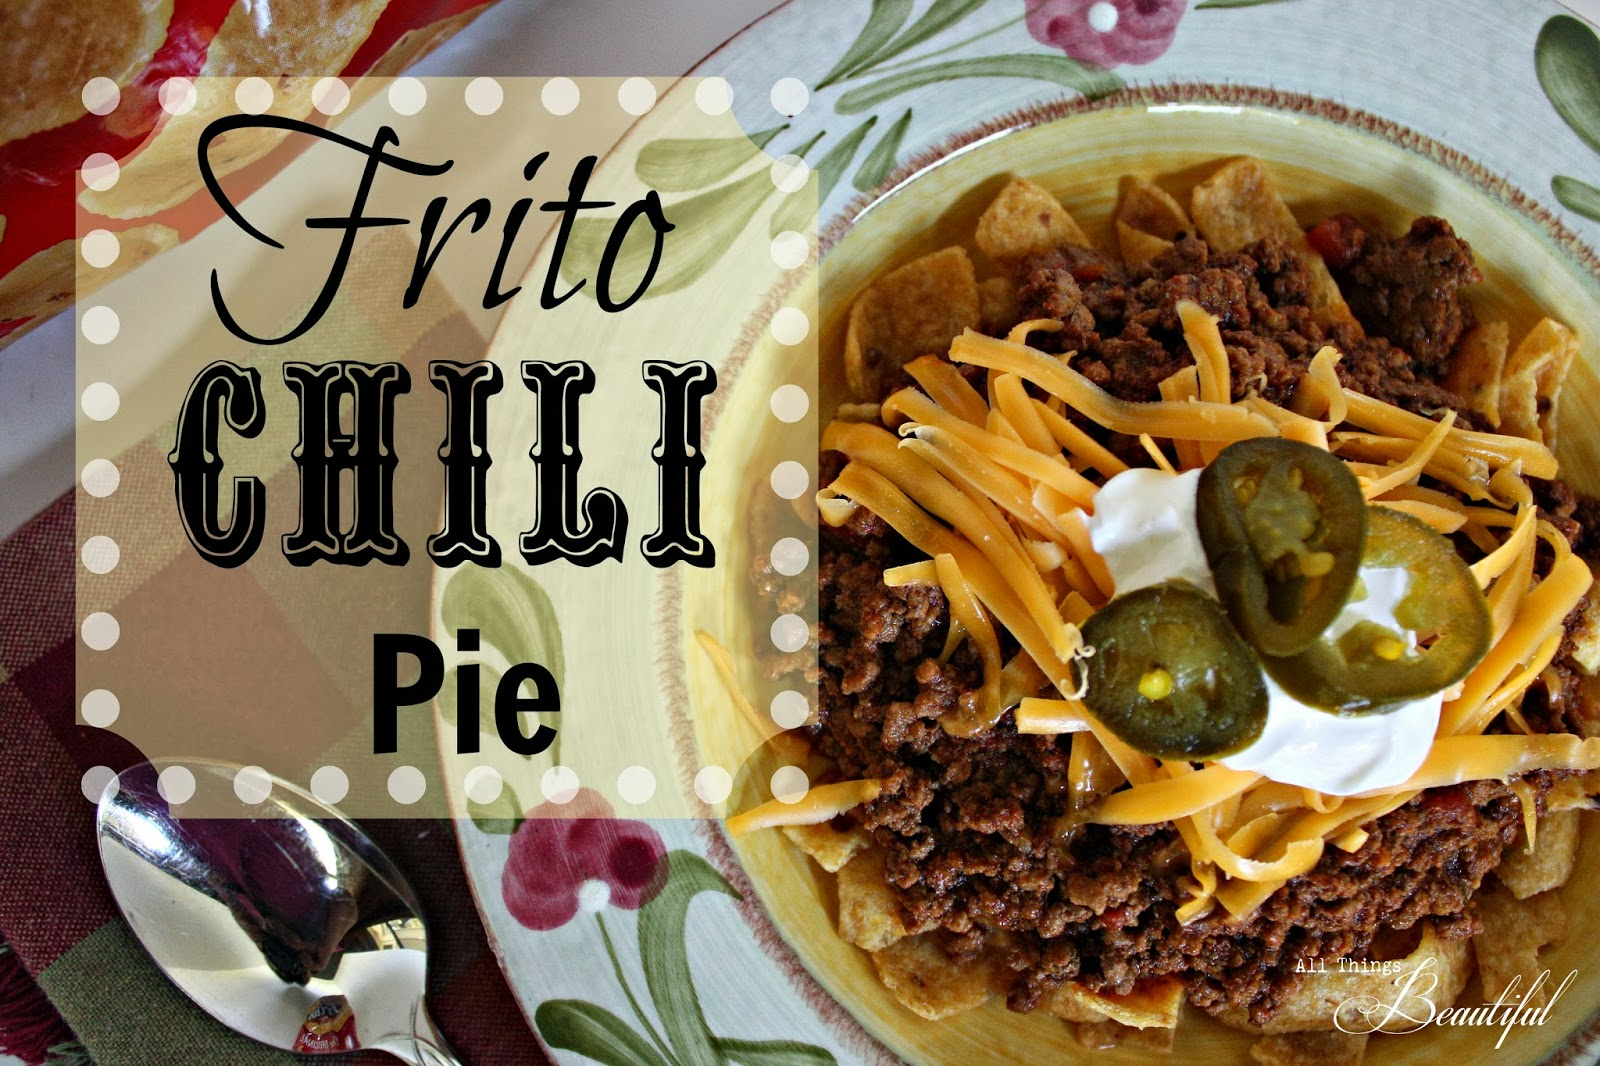 frito pie frito chili pie kimchi frito pie frito pie with 1 hour texas ...